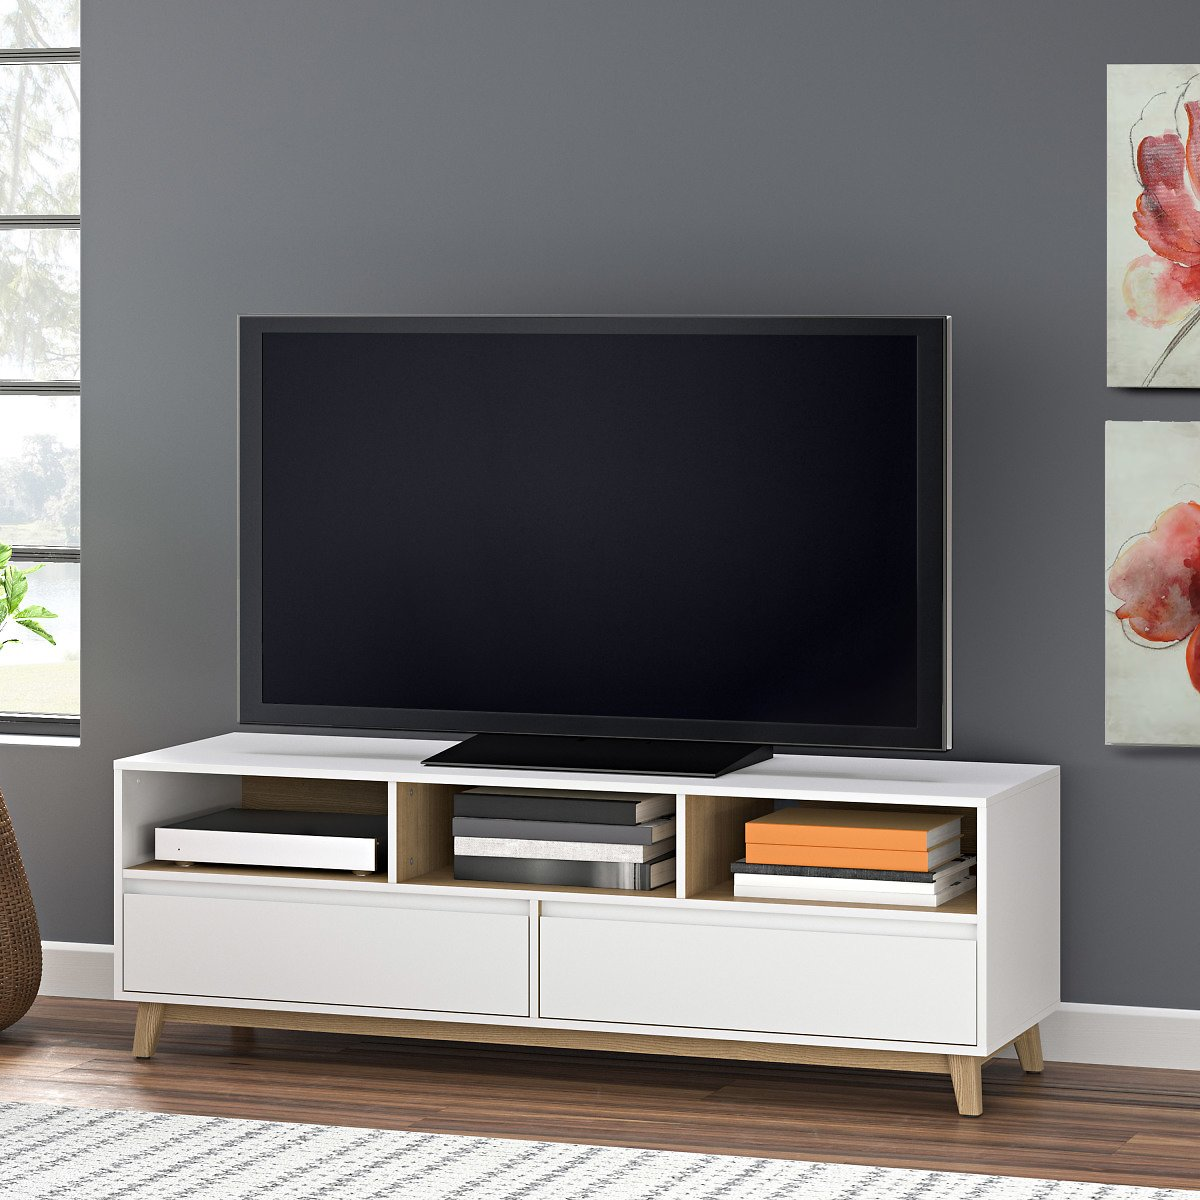 Mainstays Mid-Century TV Stand, White Finish for TVs Up to 70